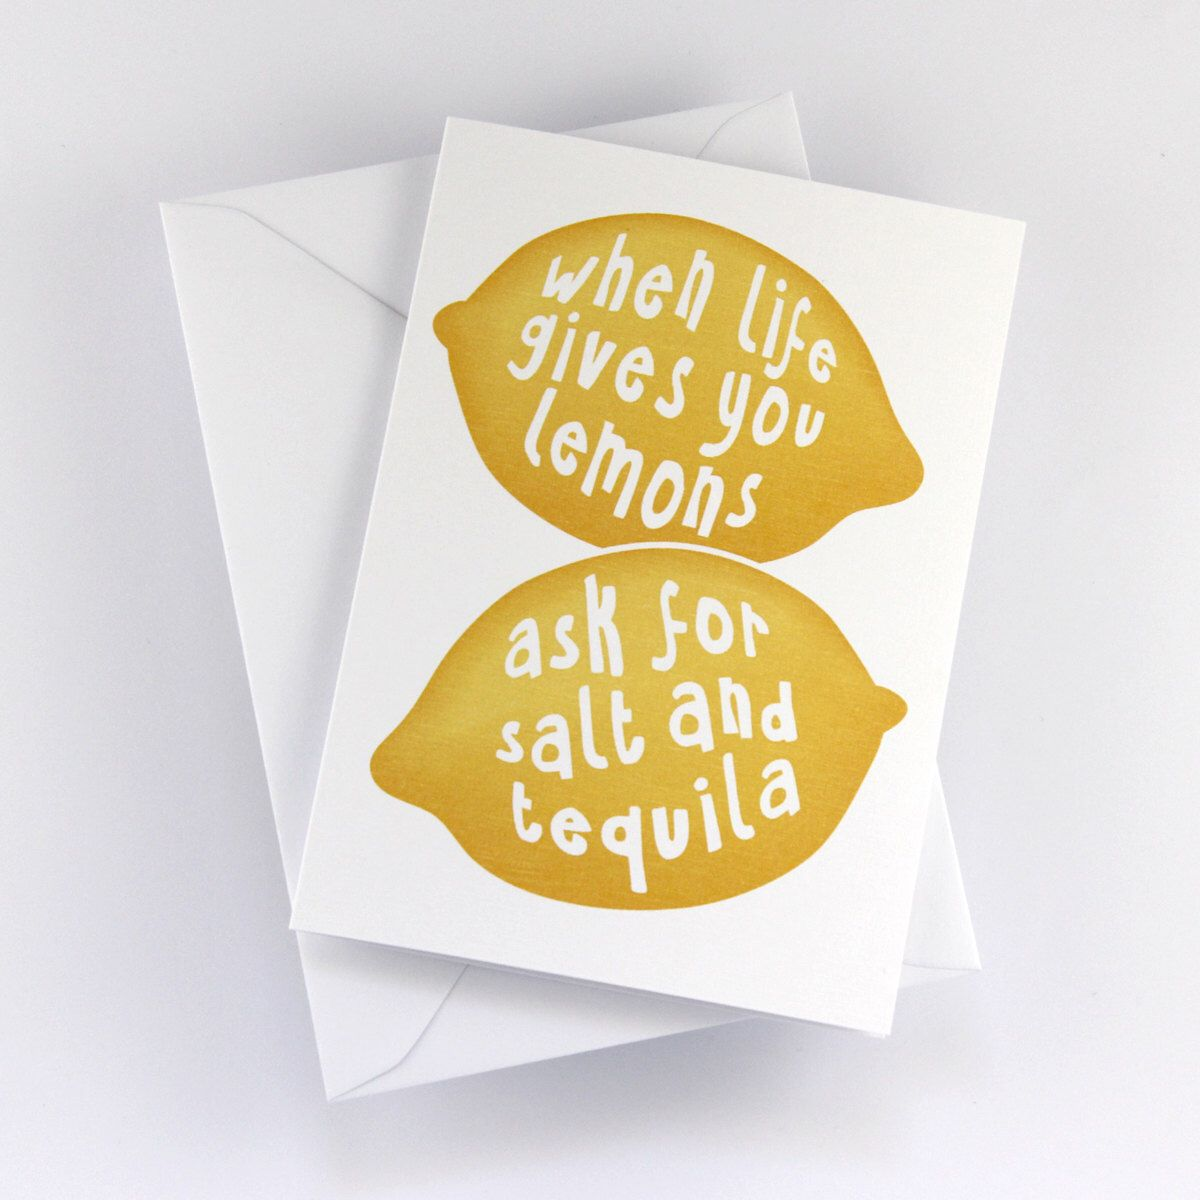 Greeting Card When Life Gives You Lemons Ask For Salt And Tequila